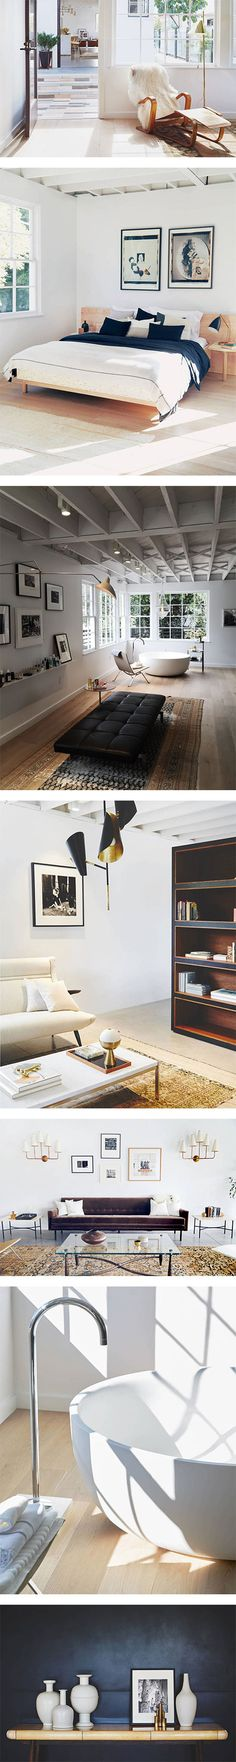 The Apartment by The Line on Nuji.com #thelineapartment #losangeles #homedecor